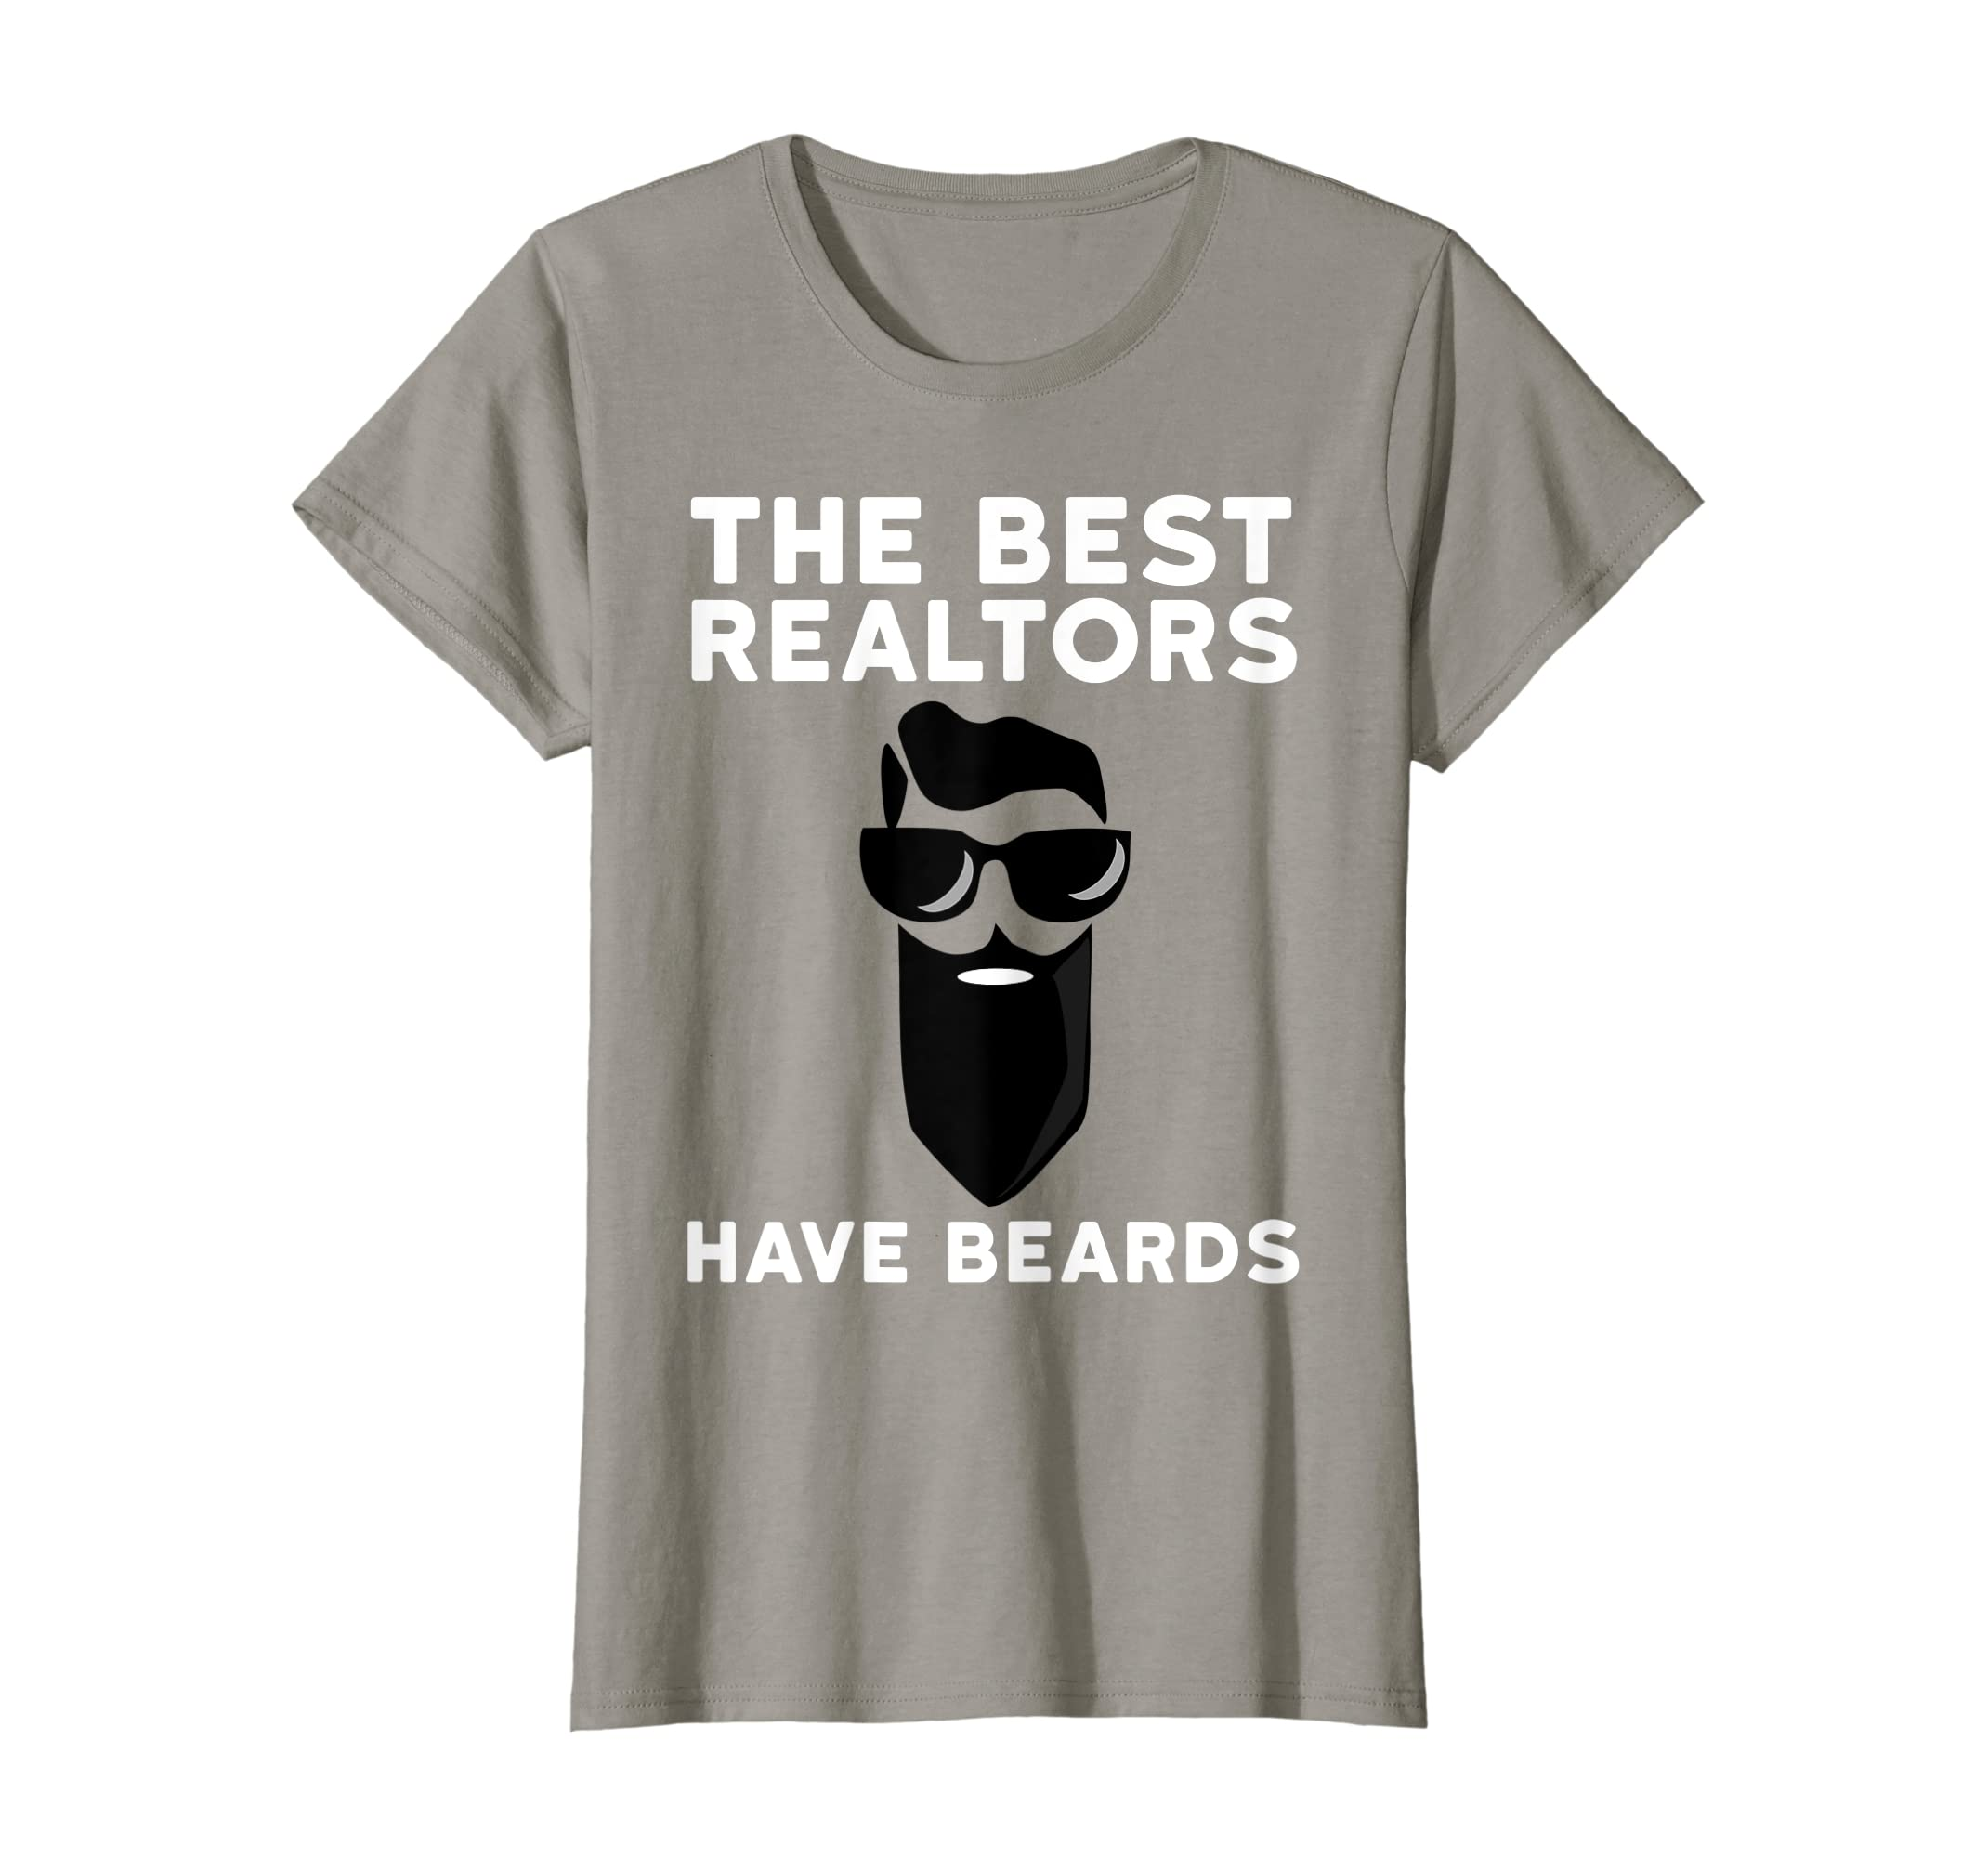 6cef1c324 Amazon.com: Funny Real Estate Beard Shirt The Best Realtors Have Beards:  Clothing